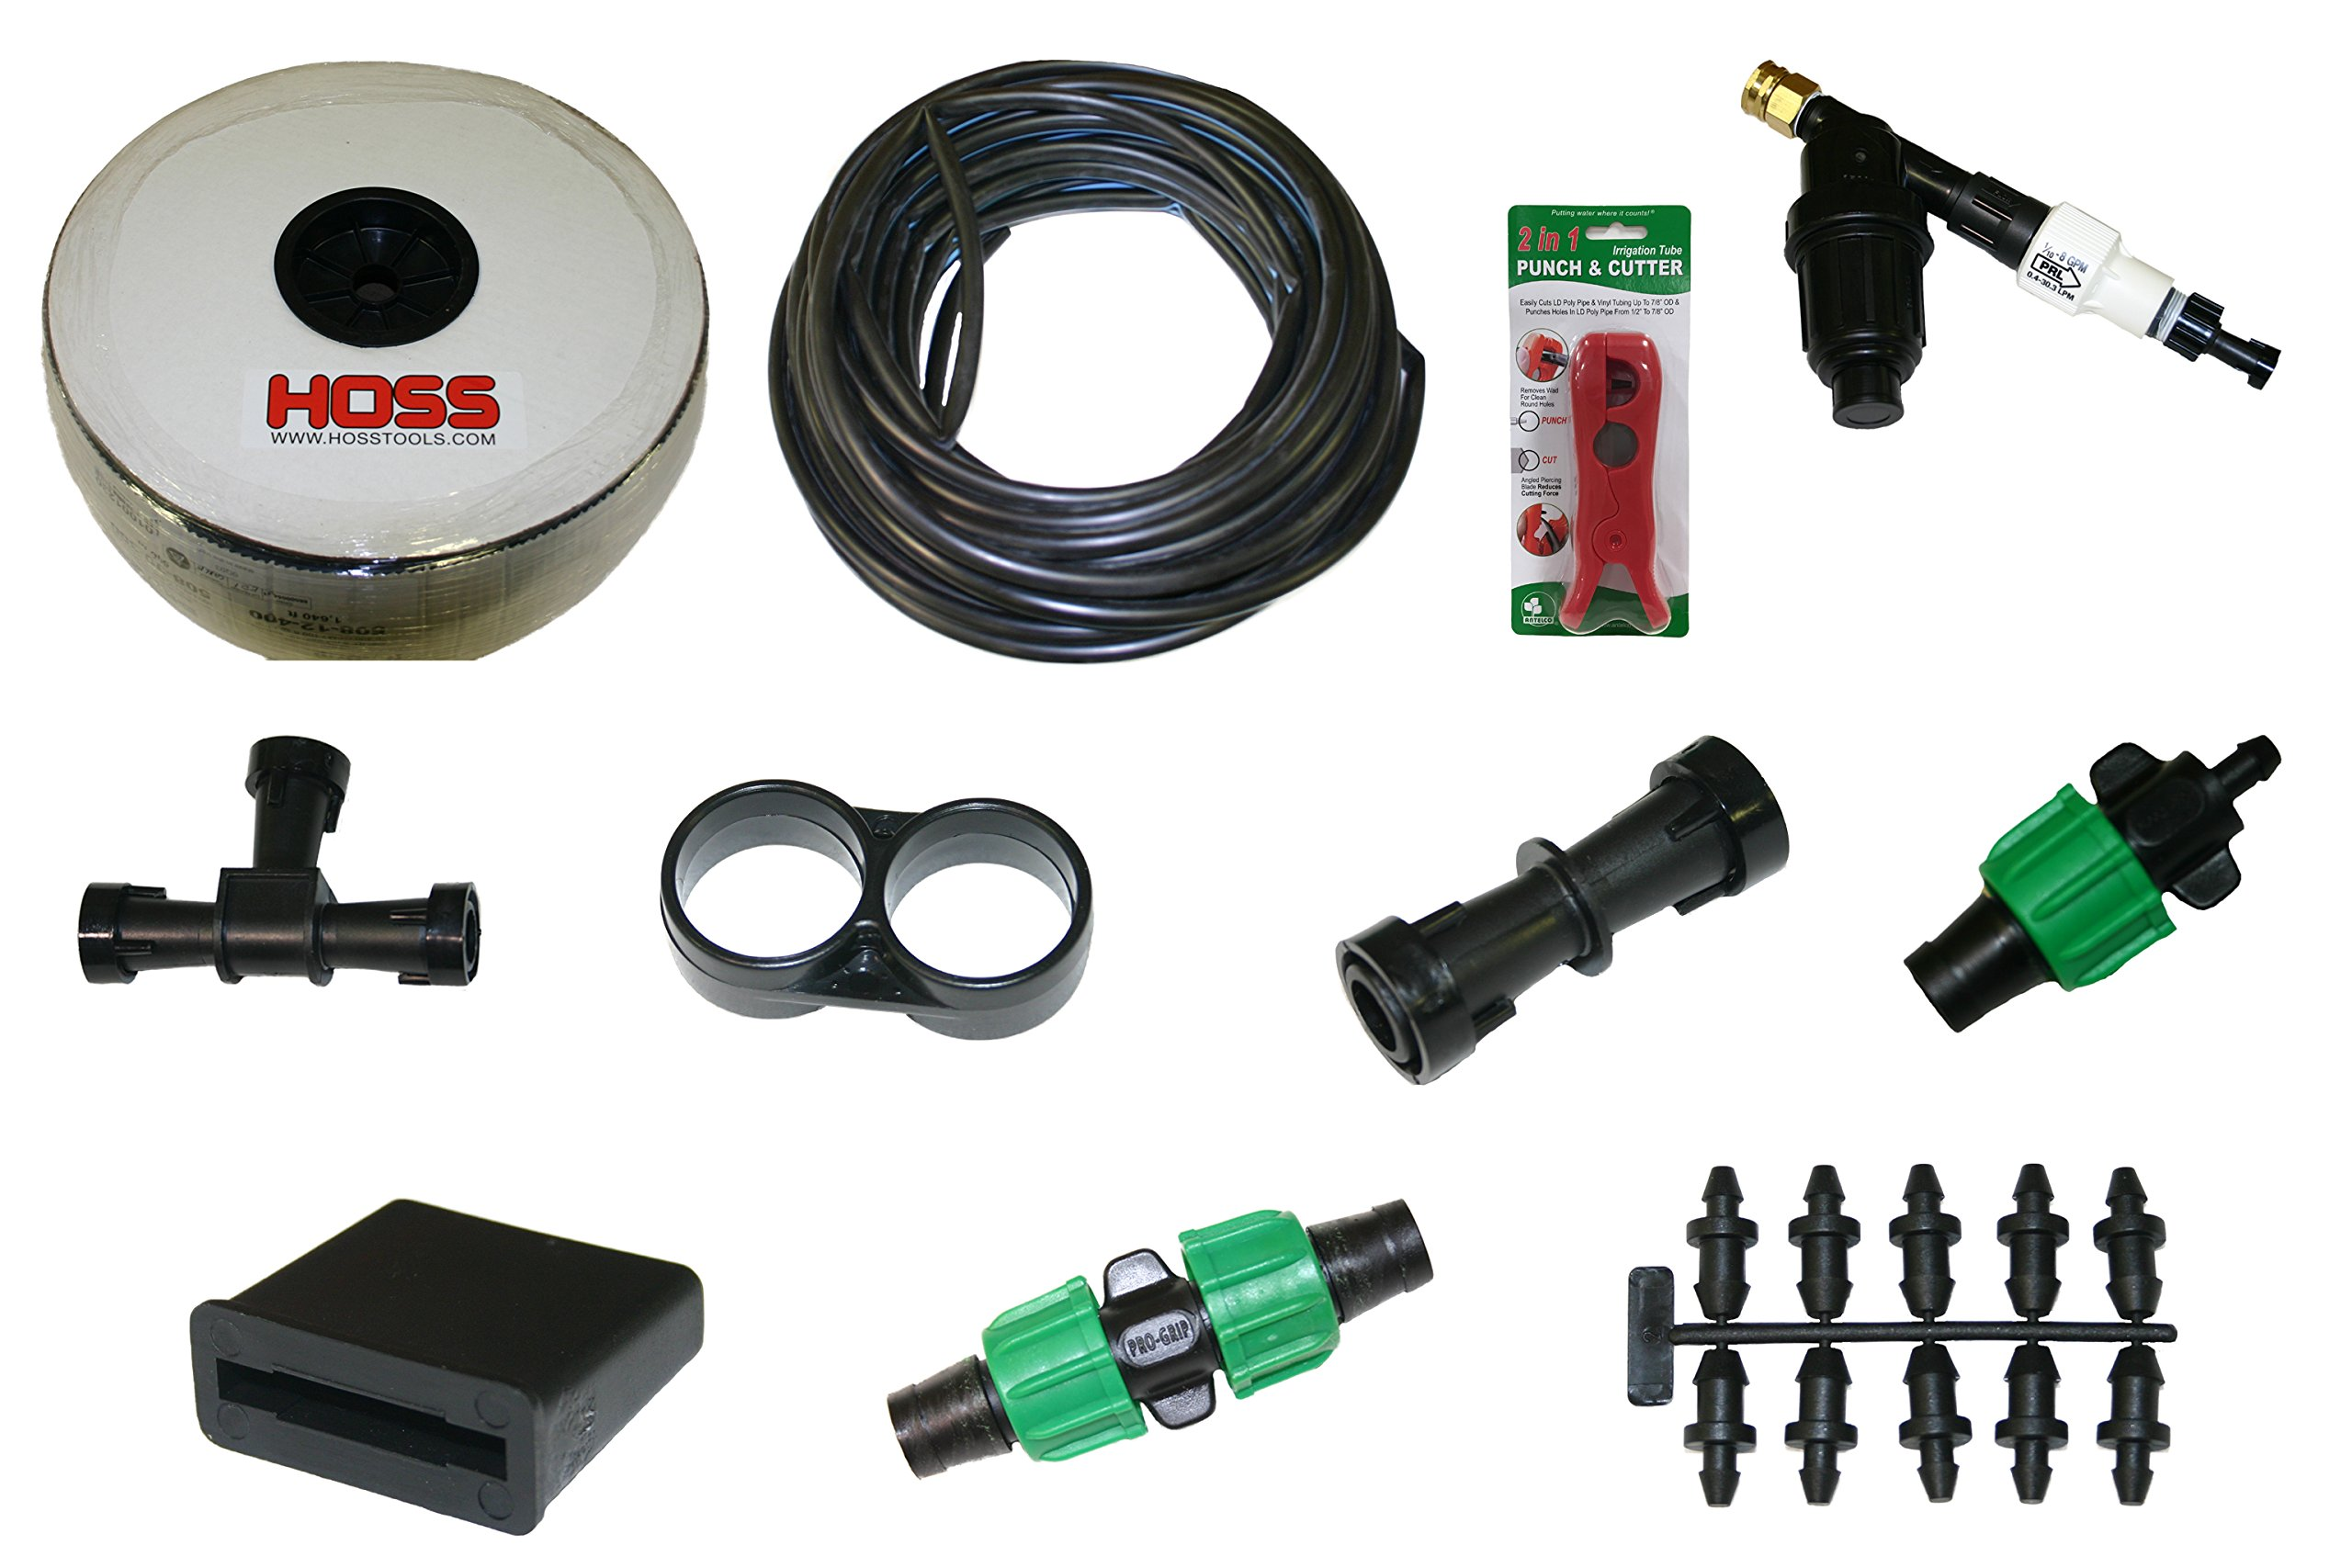 Drip Tape (8 mil) Irrigation Kit for Vegetable Gardens | 1640 ft. Roll | Fittings for 20 Rows